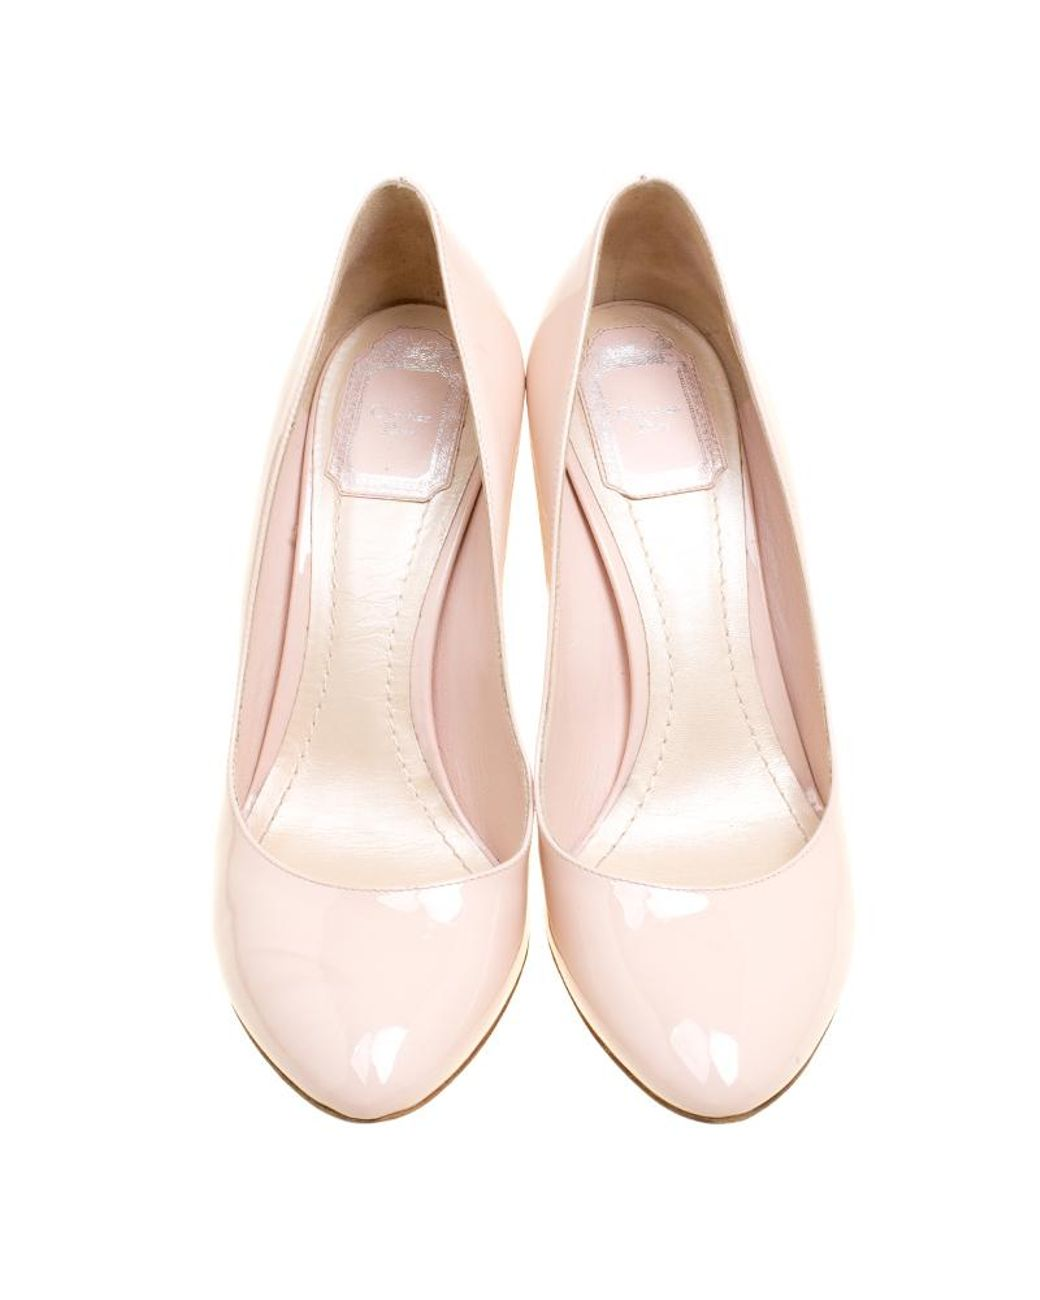 7c24d93a415 Dior Patent Leather Heels in Pink - Save 2% - Lyst